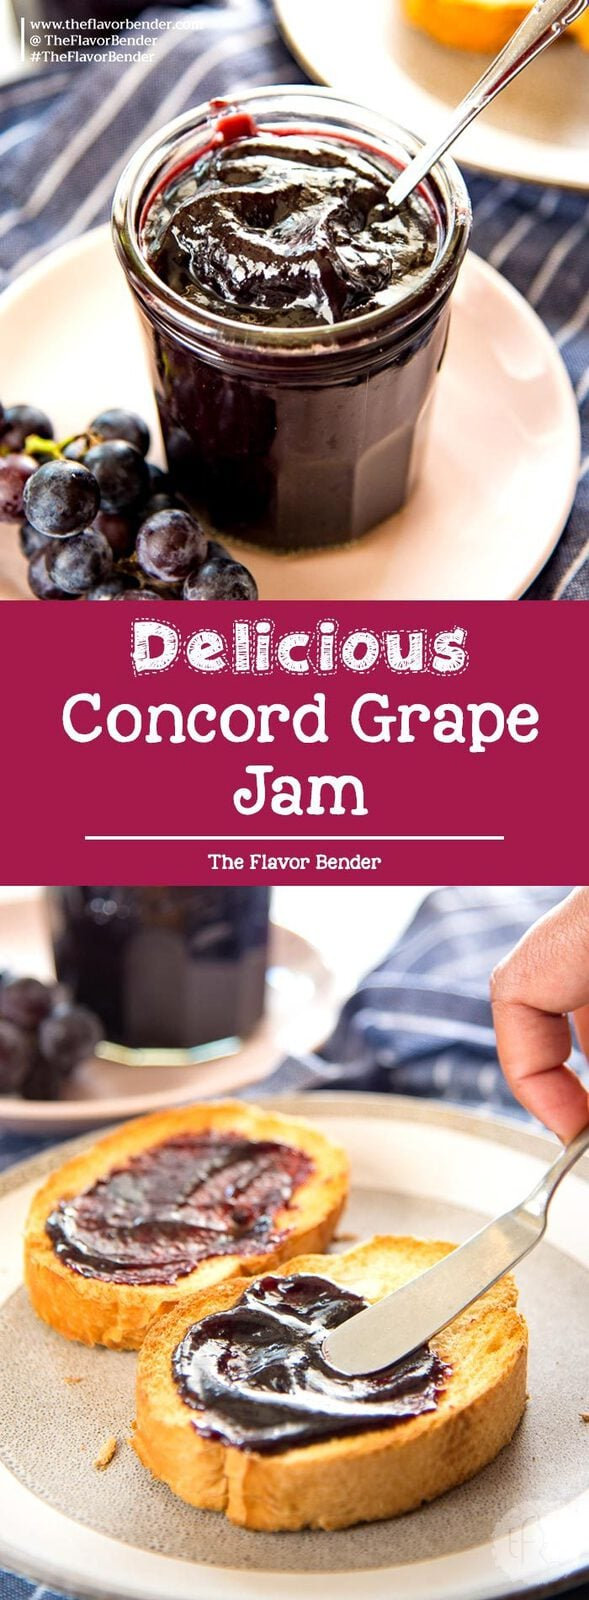 This Homemade Concord Grape Jelly recipe (Concord Grape Jam) is so easy, and so delicious! Perfectly tart and sweet and perfect on everything! #ConcordGrapeRecipes #ConcordGrapeJam #FruitSpreads #BreakfastSpreads #FruitJelly